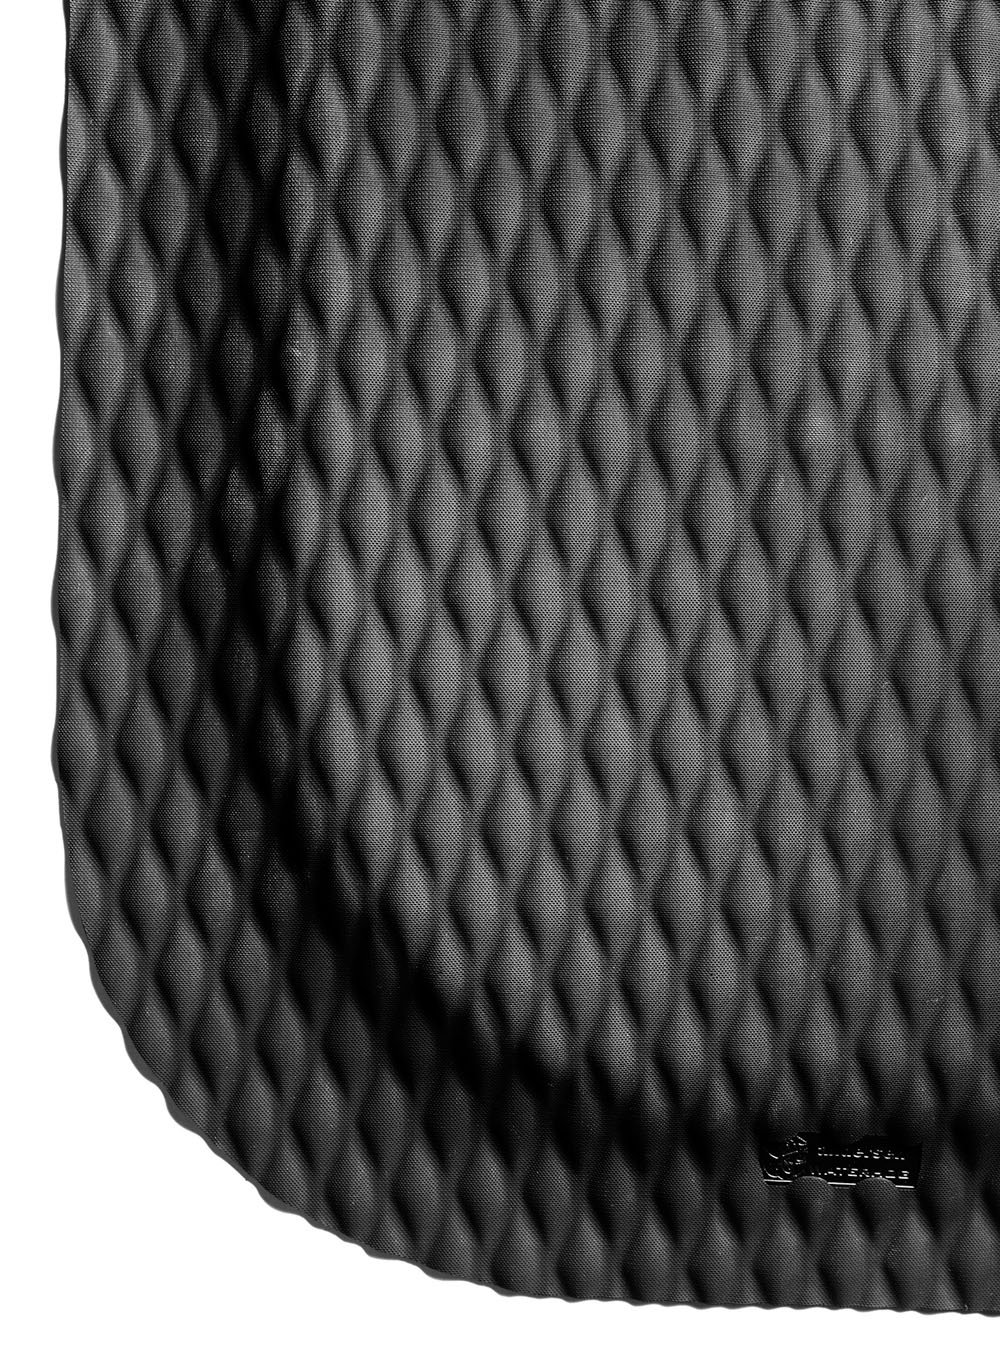 Andersen 422 Nitrile Rubber Hog Heaven Anti-Fatigue Mat with Black Border, 6' Length x 4' Width x 7/8'' Thick, For Dry Areas